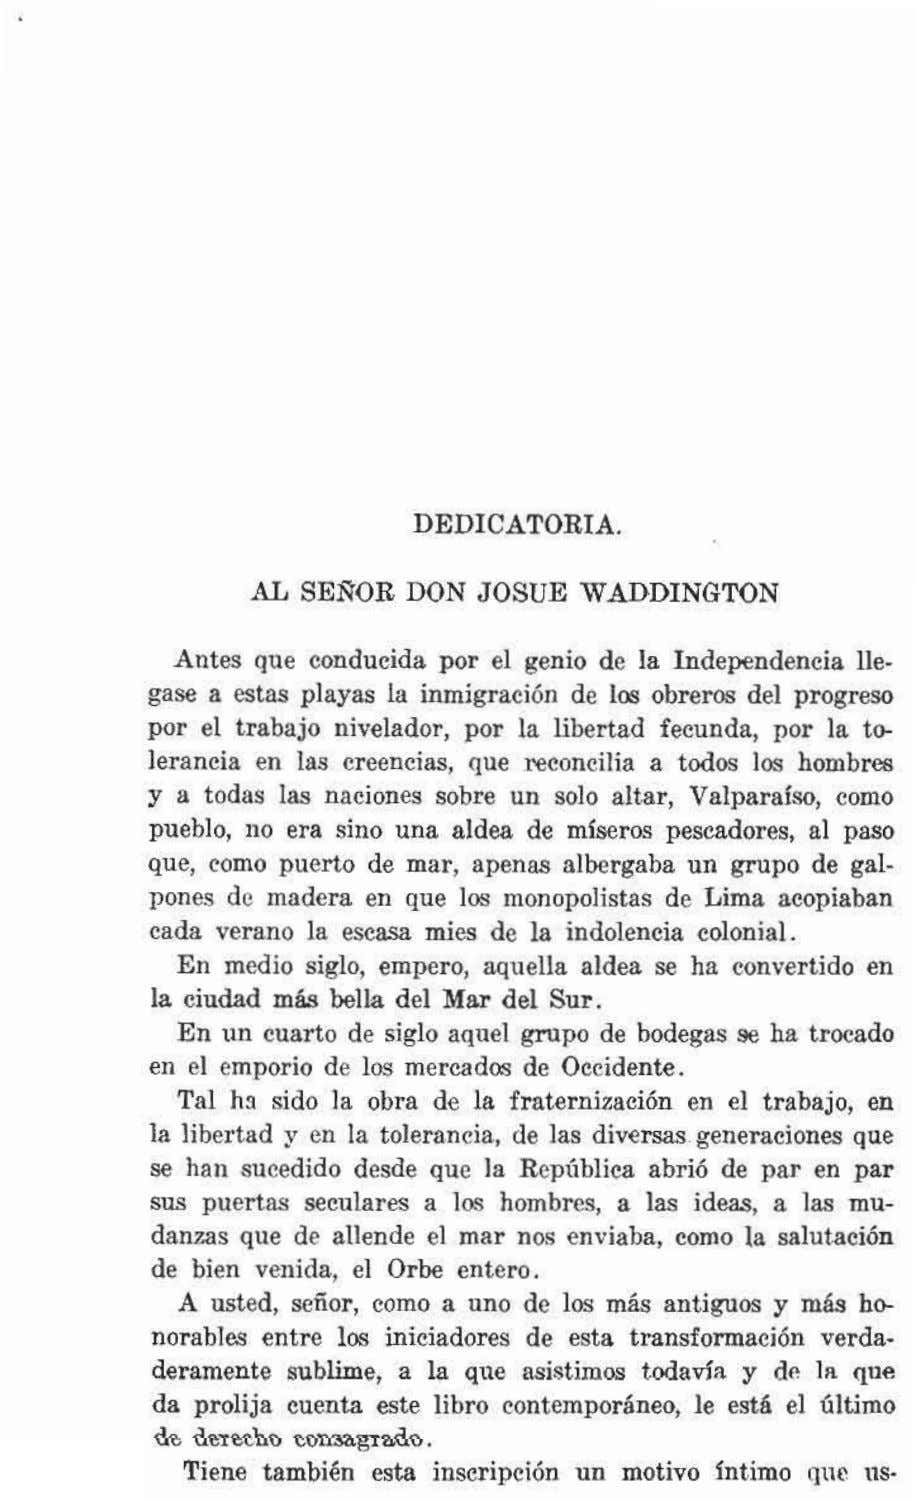 DEDICATORIA. AL SEÑQR DON JOSUE WADDINGTON Antes que conducida por el genio de la Independencia